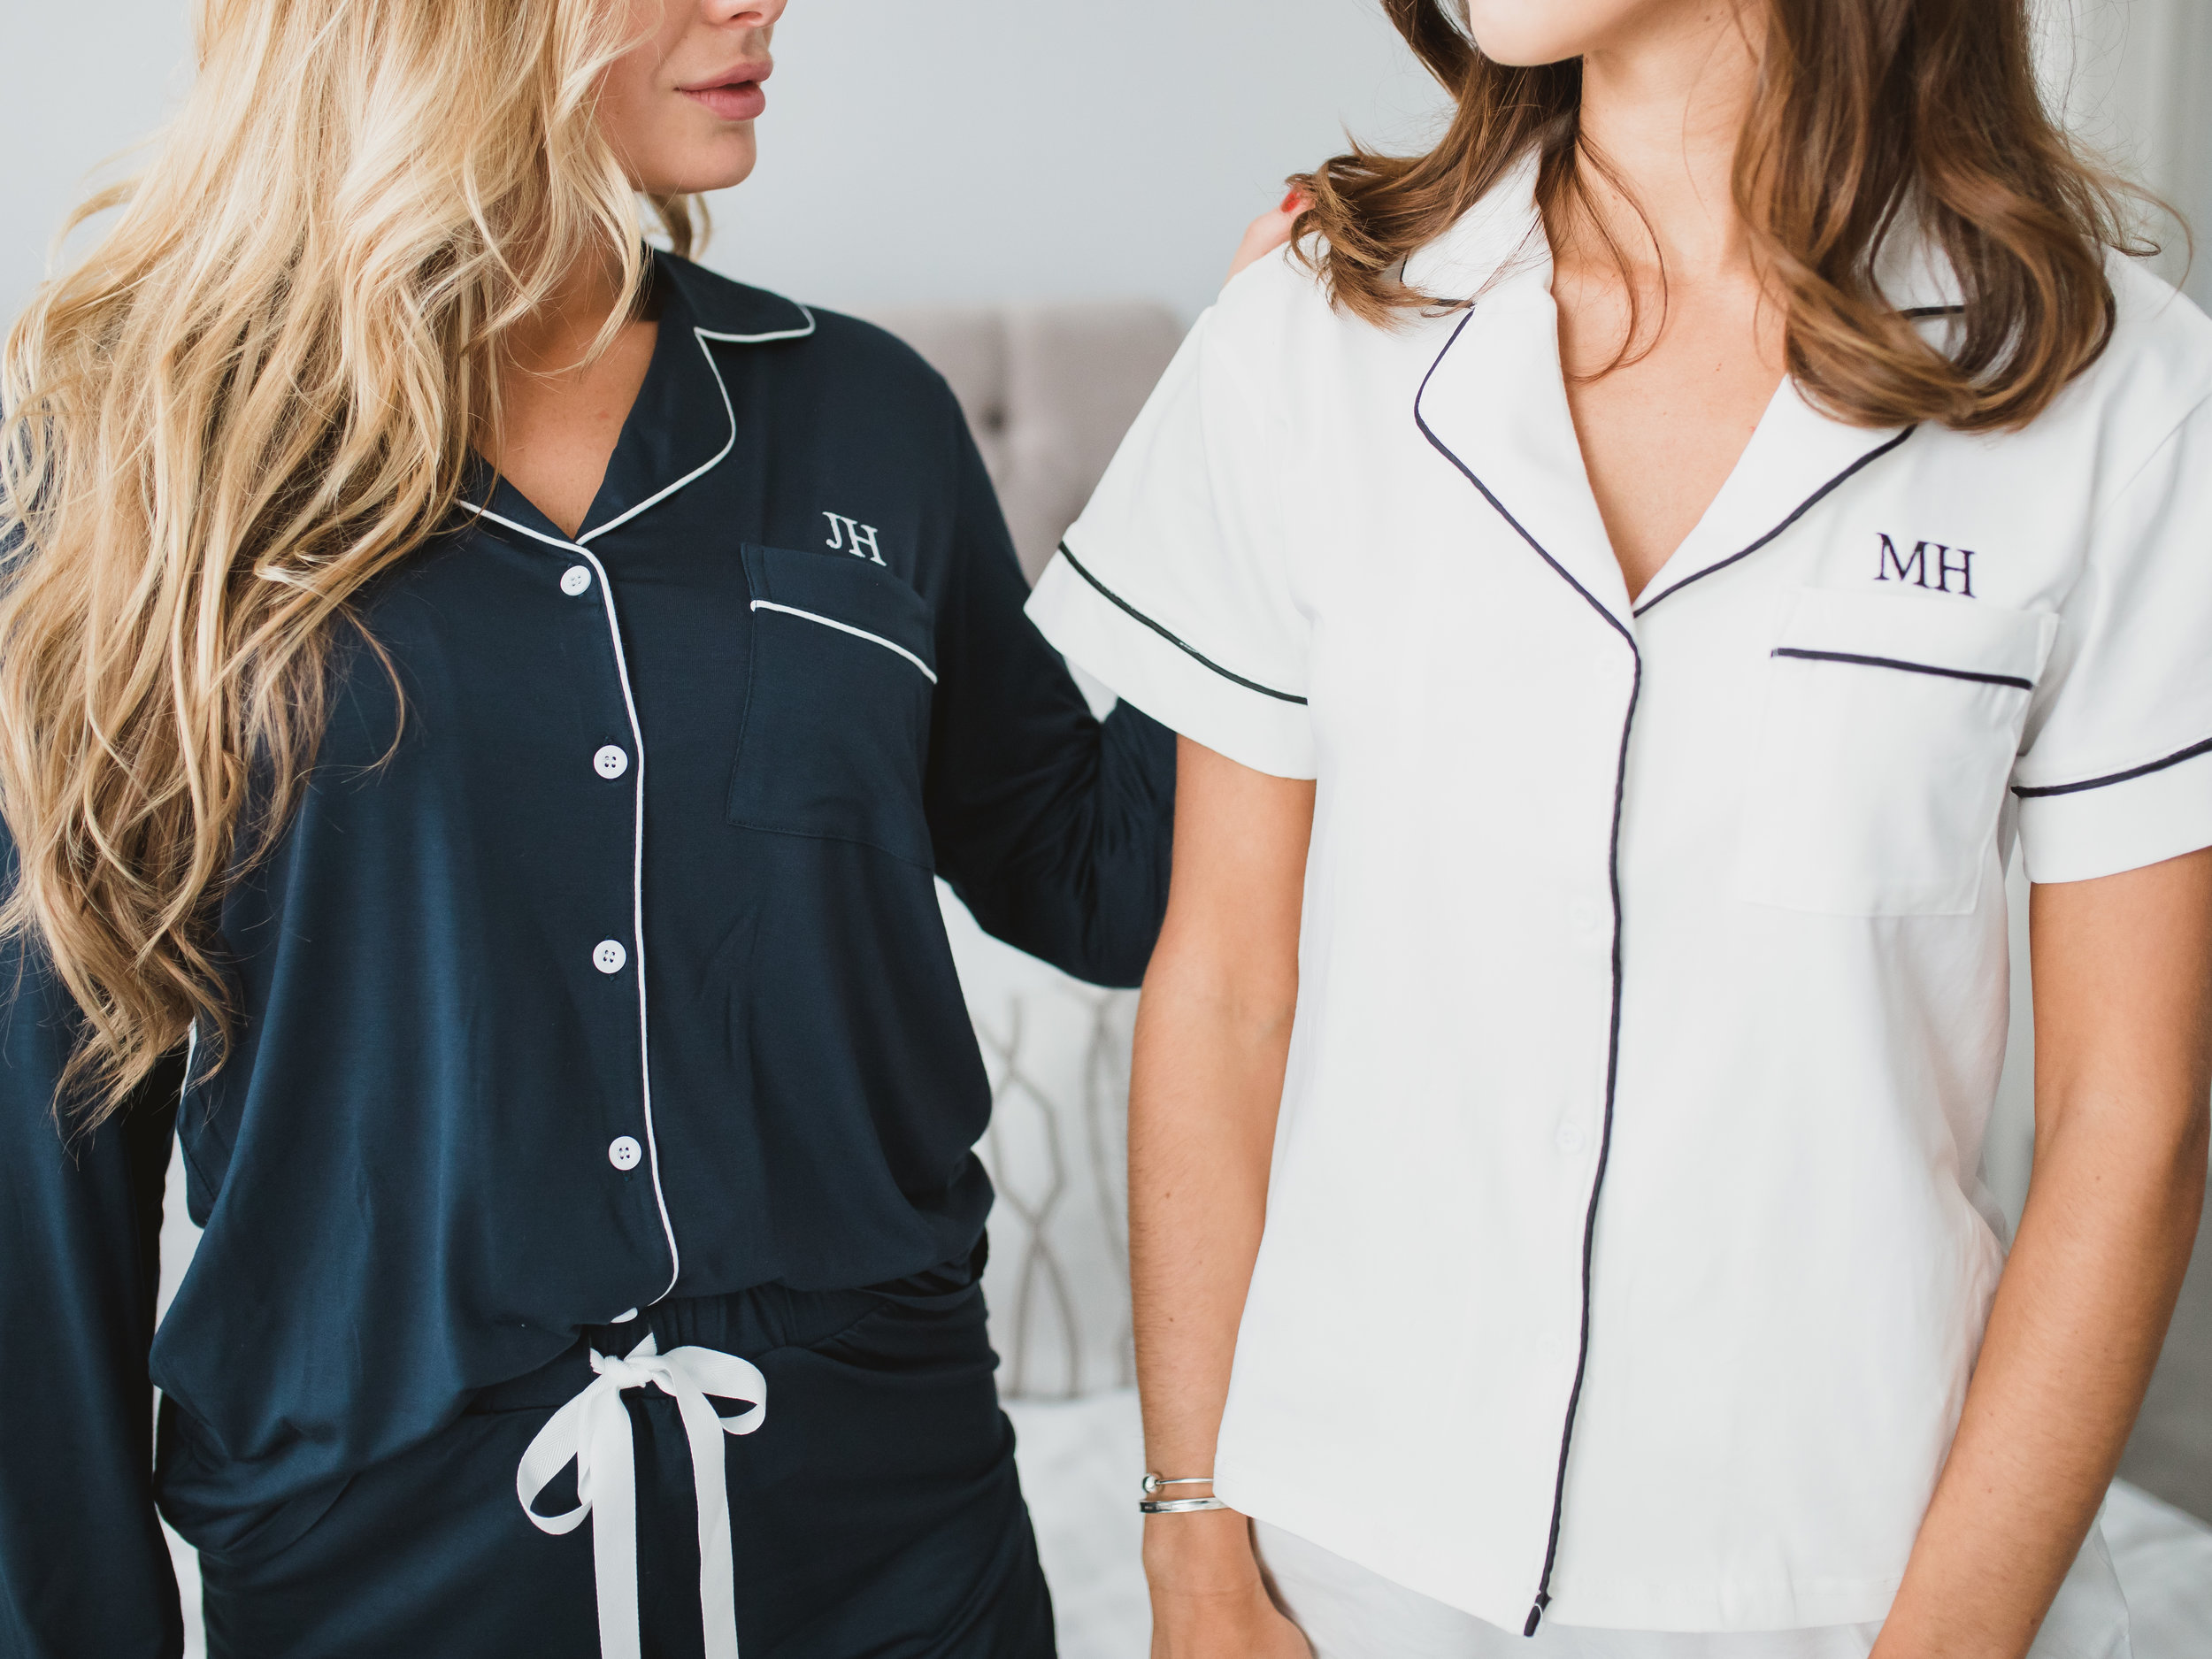 Make it personal… - All of our pyjamas, robes and loungewear can be personalised with your name, initials or favourite quote.